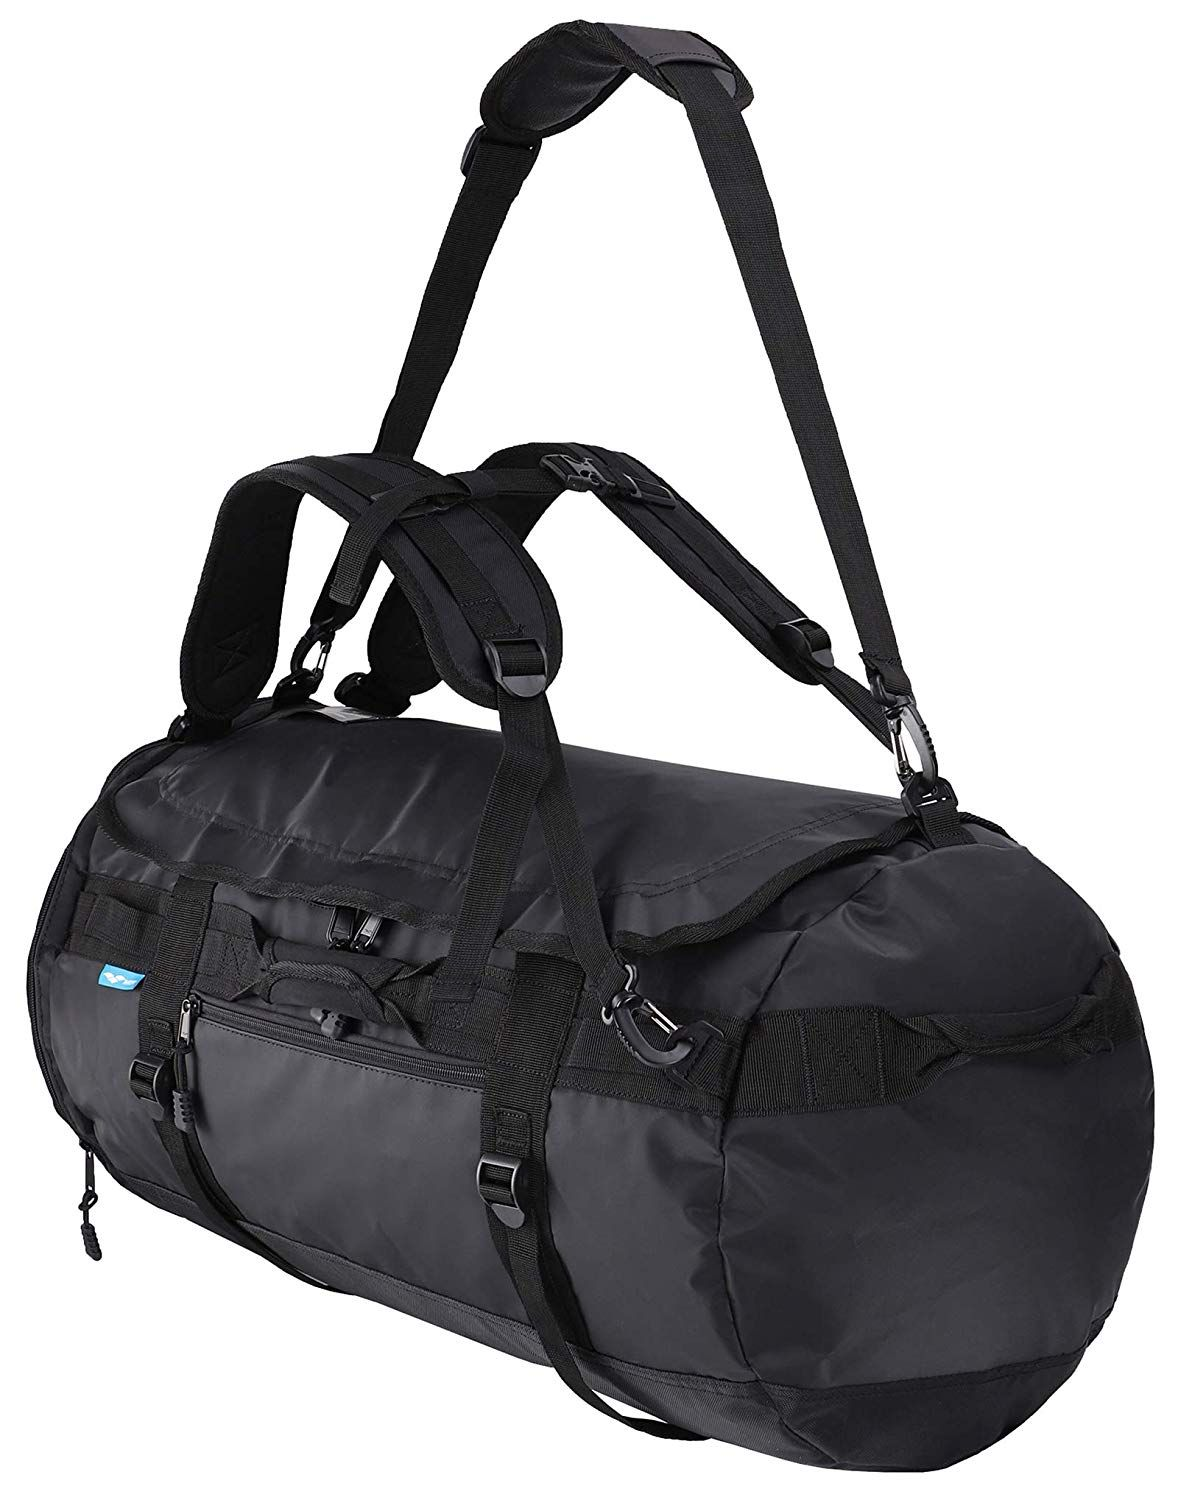 MIER Large Duffel Backpack Sports Gym Bag with Shoe